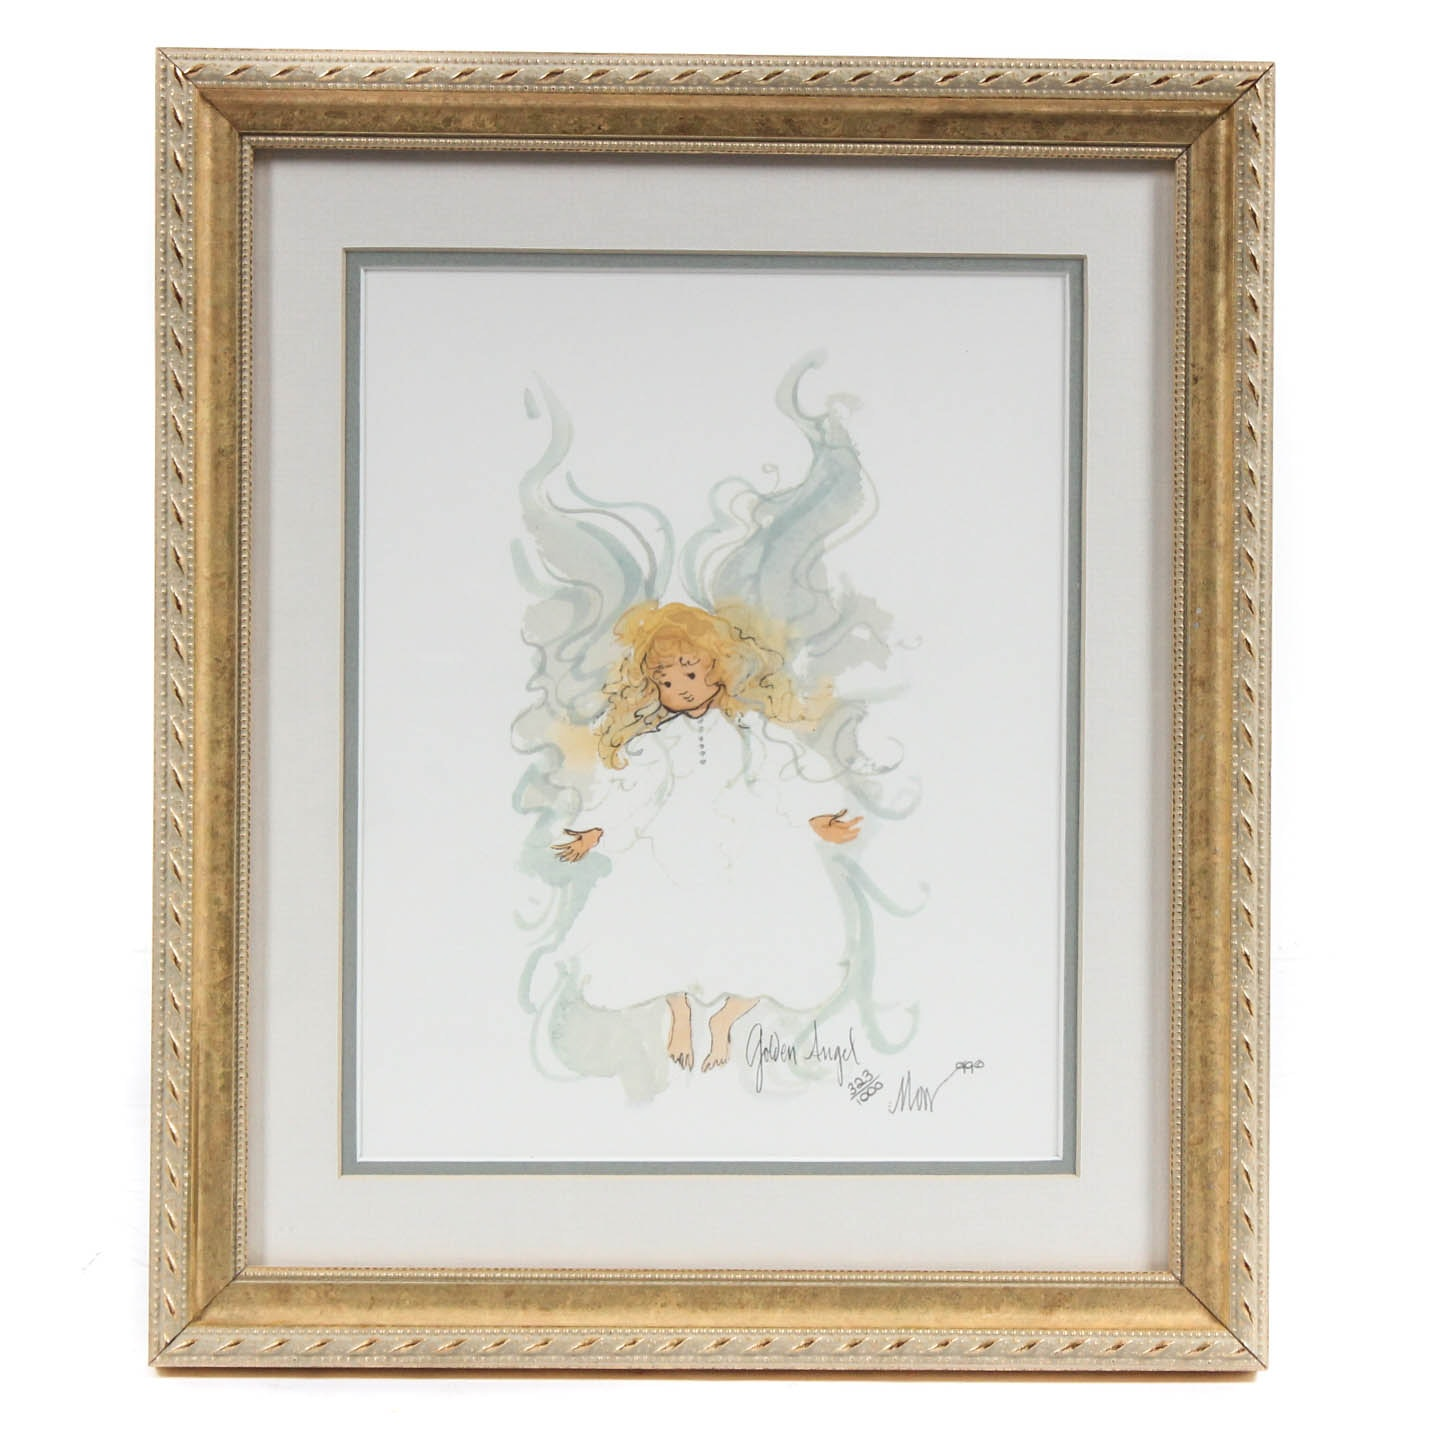 "P. Buckley Moss Limited Edition Offset Lithograph ""Golden Angel"" with Book"